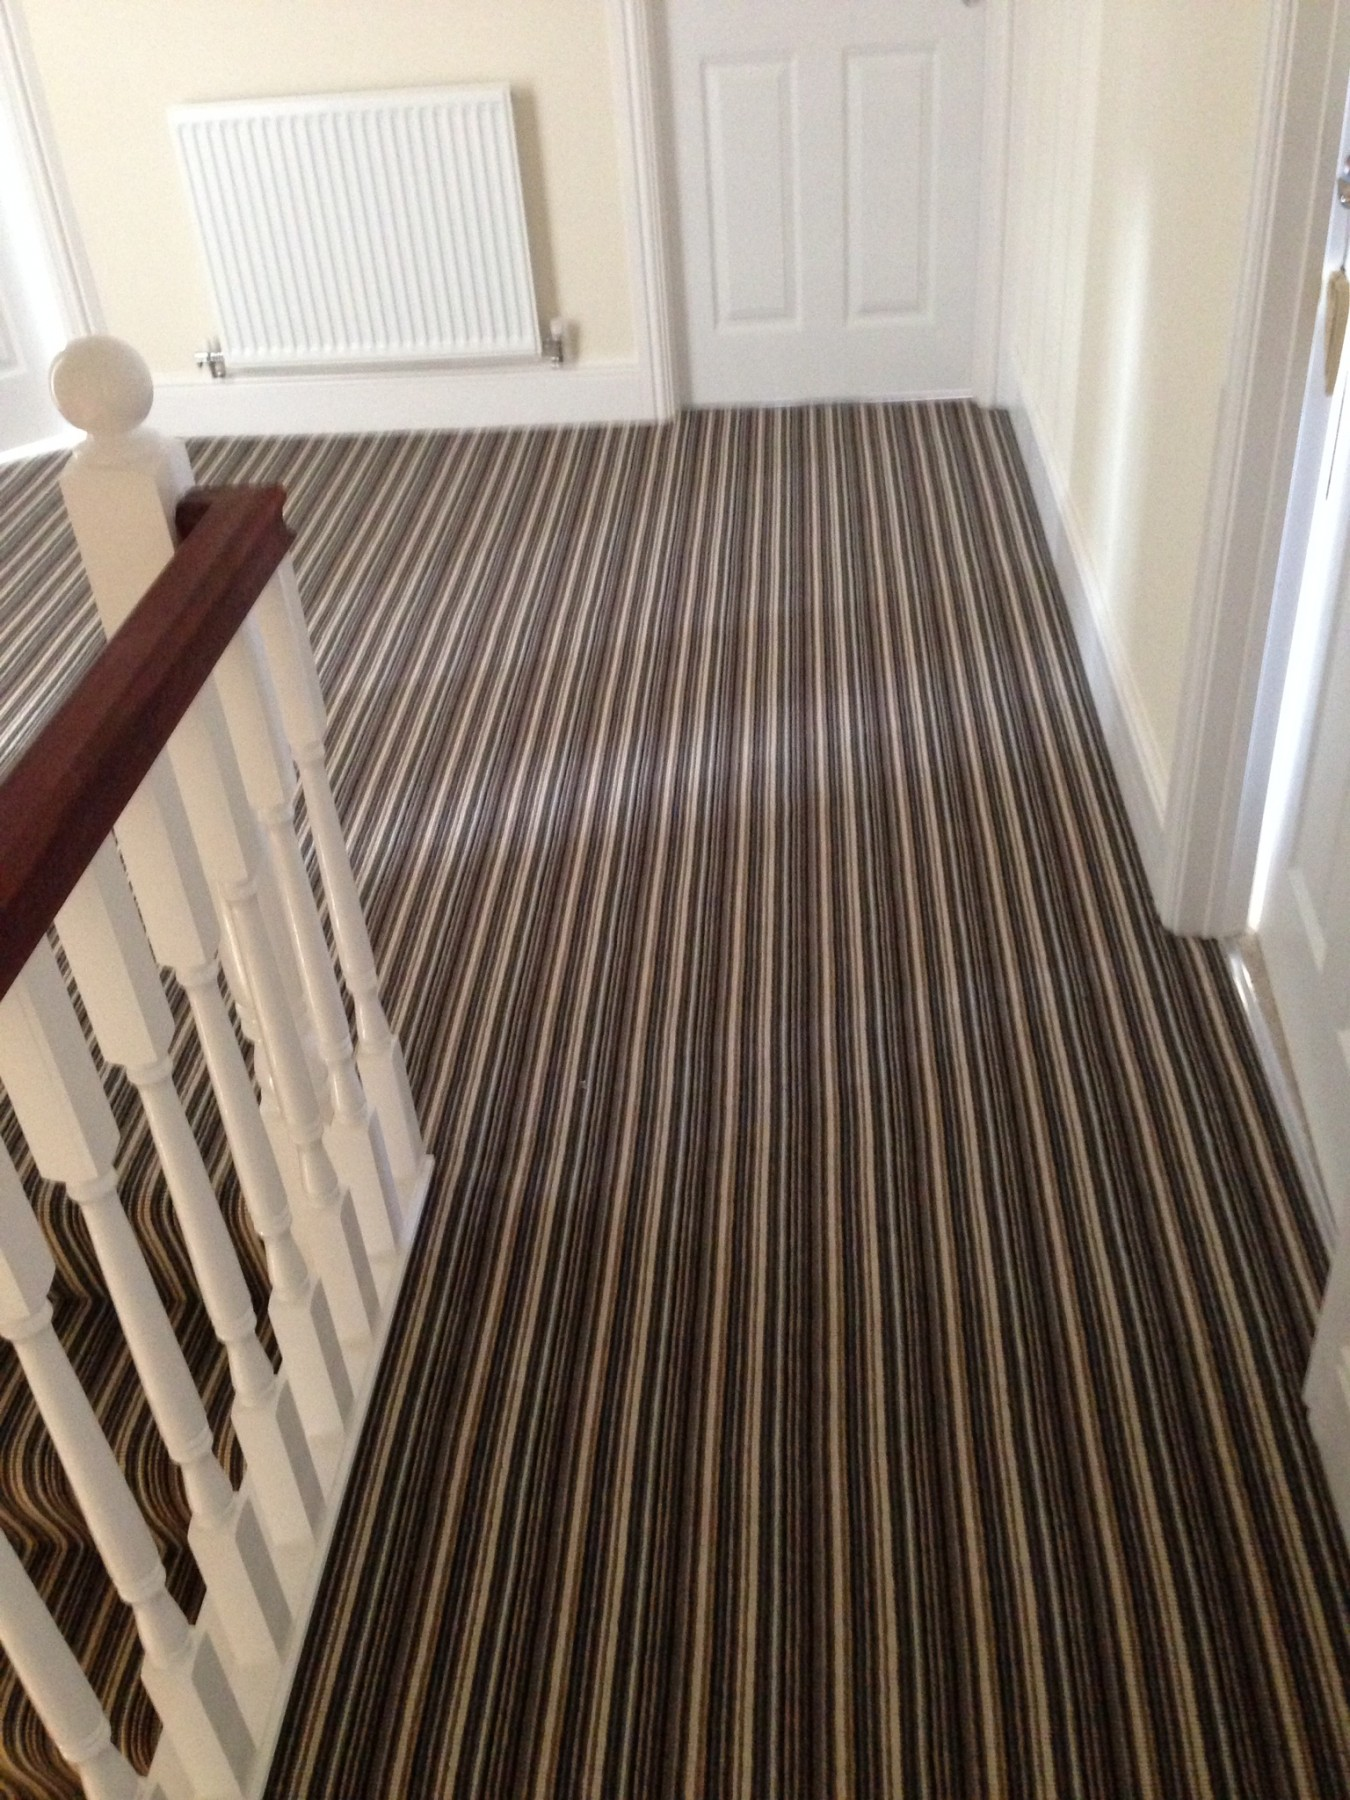 Striped carpet on a large landing with cream walls